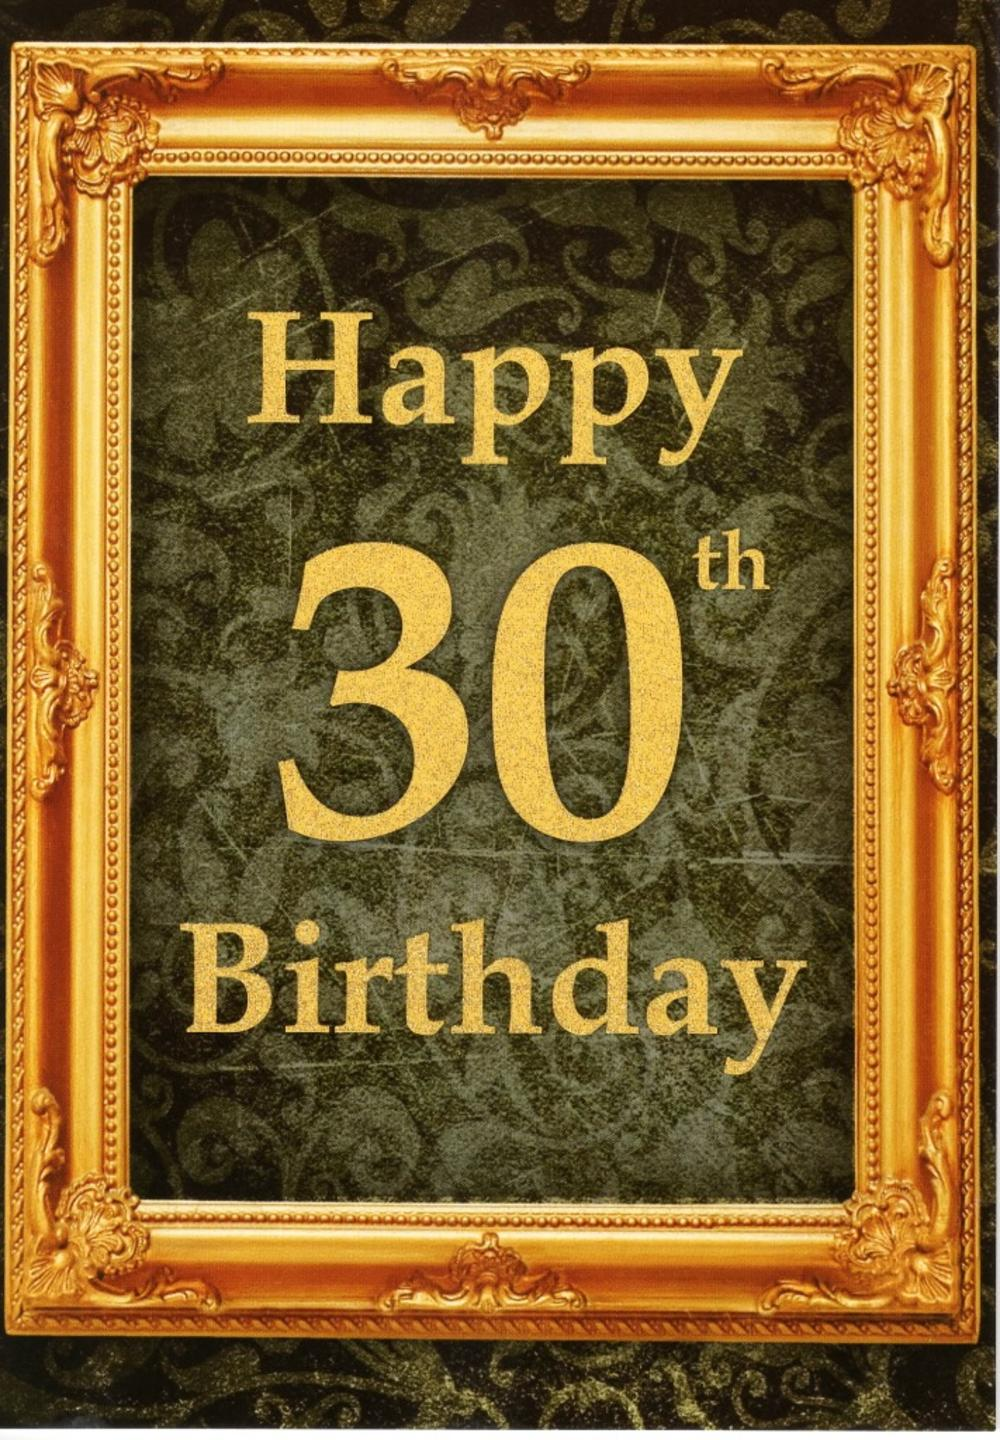 Happy 30th birthday greeting card cards love kates happy 30th birthday greeting card kristyandbryce Choice Image